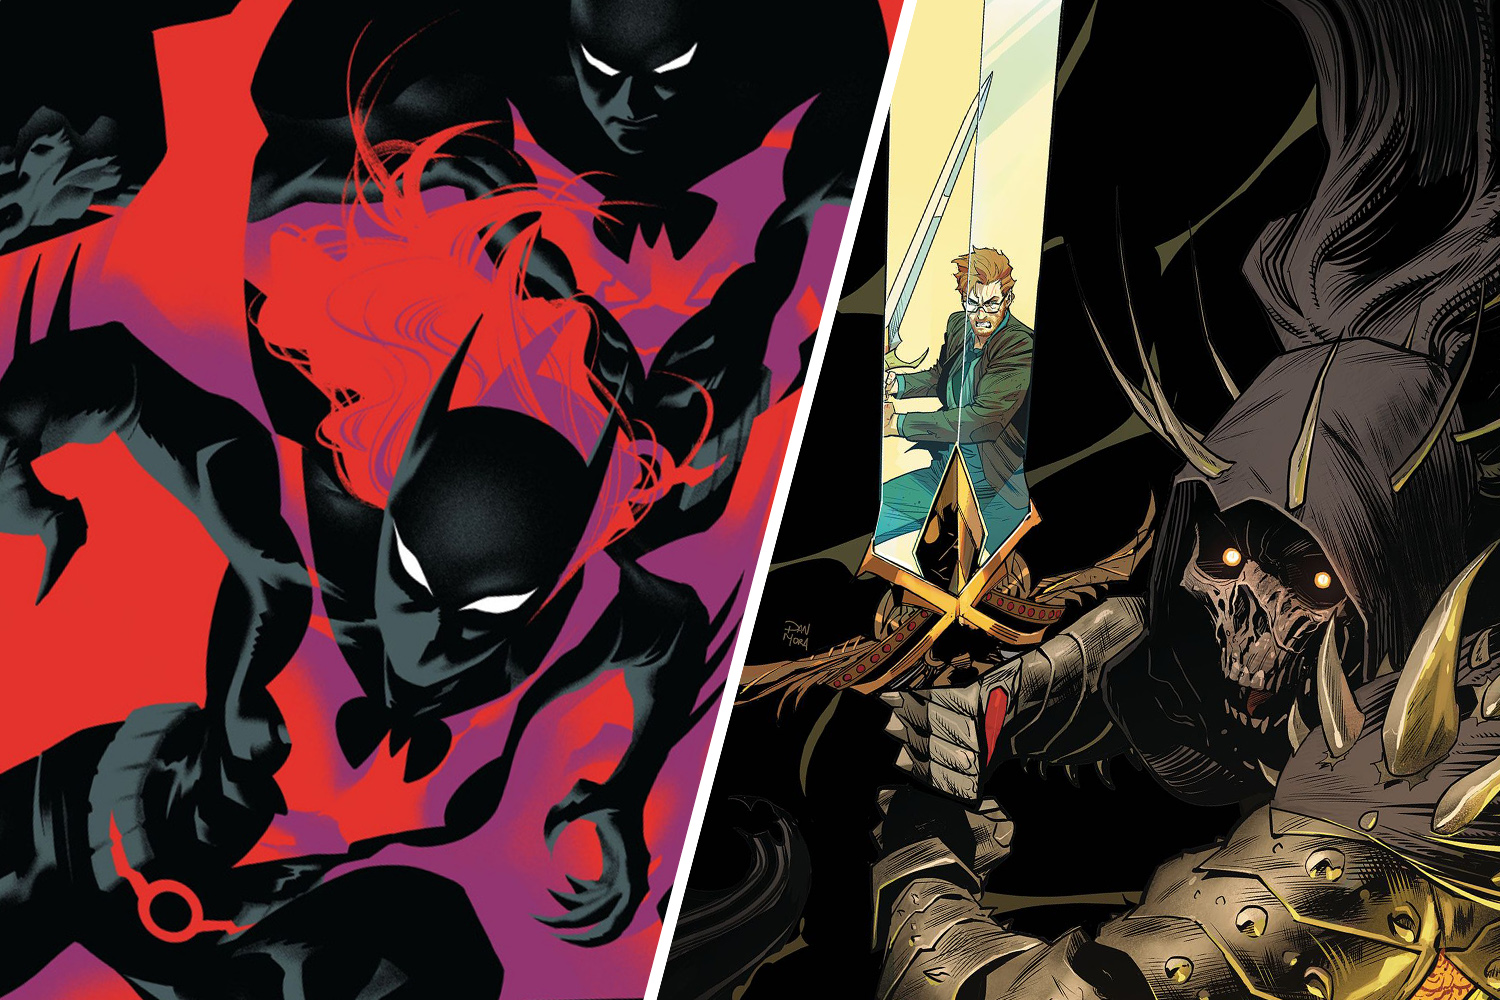 AIPT Comics Podcast Episode 55: X-Men, Catwoman, and Empyre get new details, plus we talk to Christmas and Cole about new Image Comics sci-fi series Tartarus